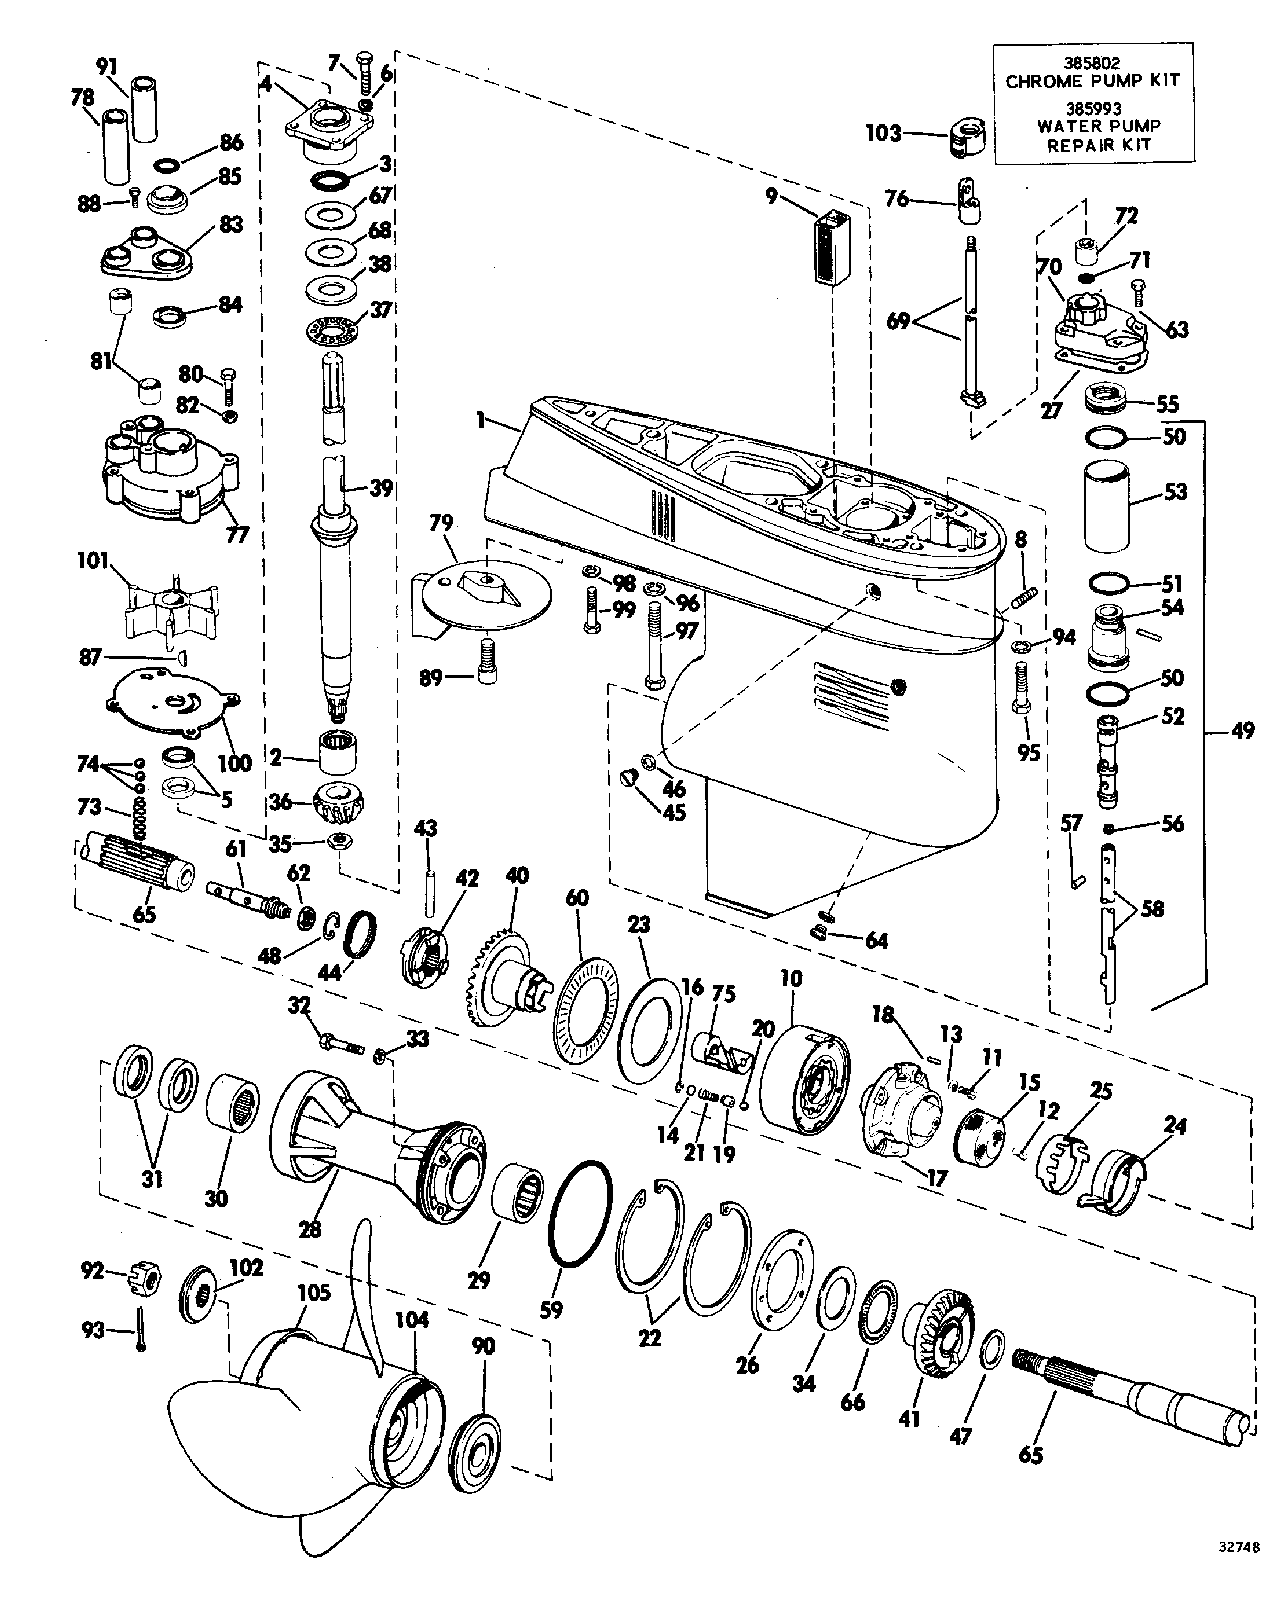 verado ignition switch wiring diagram verado wiring diagrams 2009 10 03 071846 115393mgearcase verado ignition switch wiring diagram